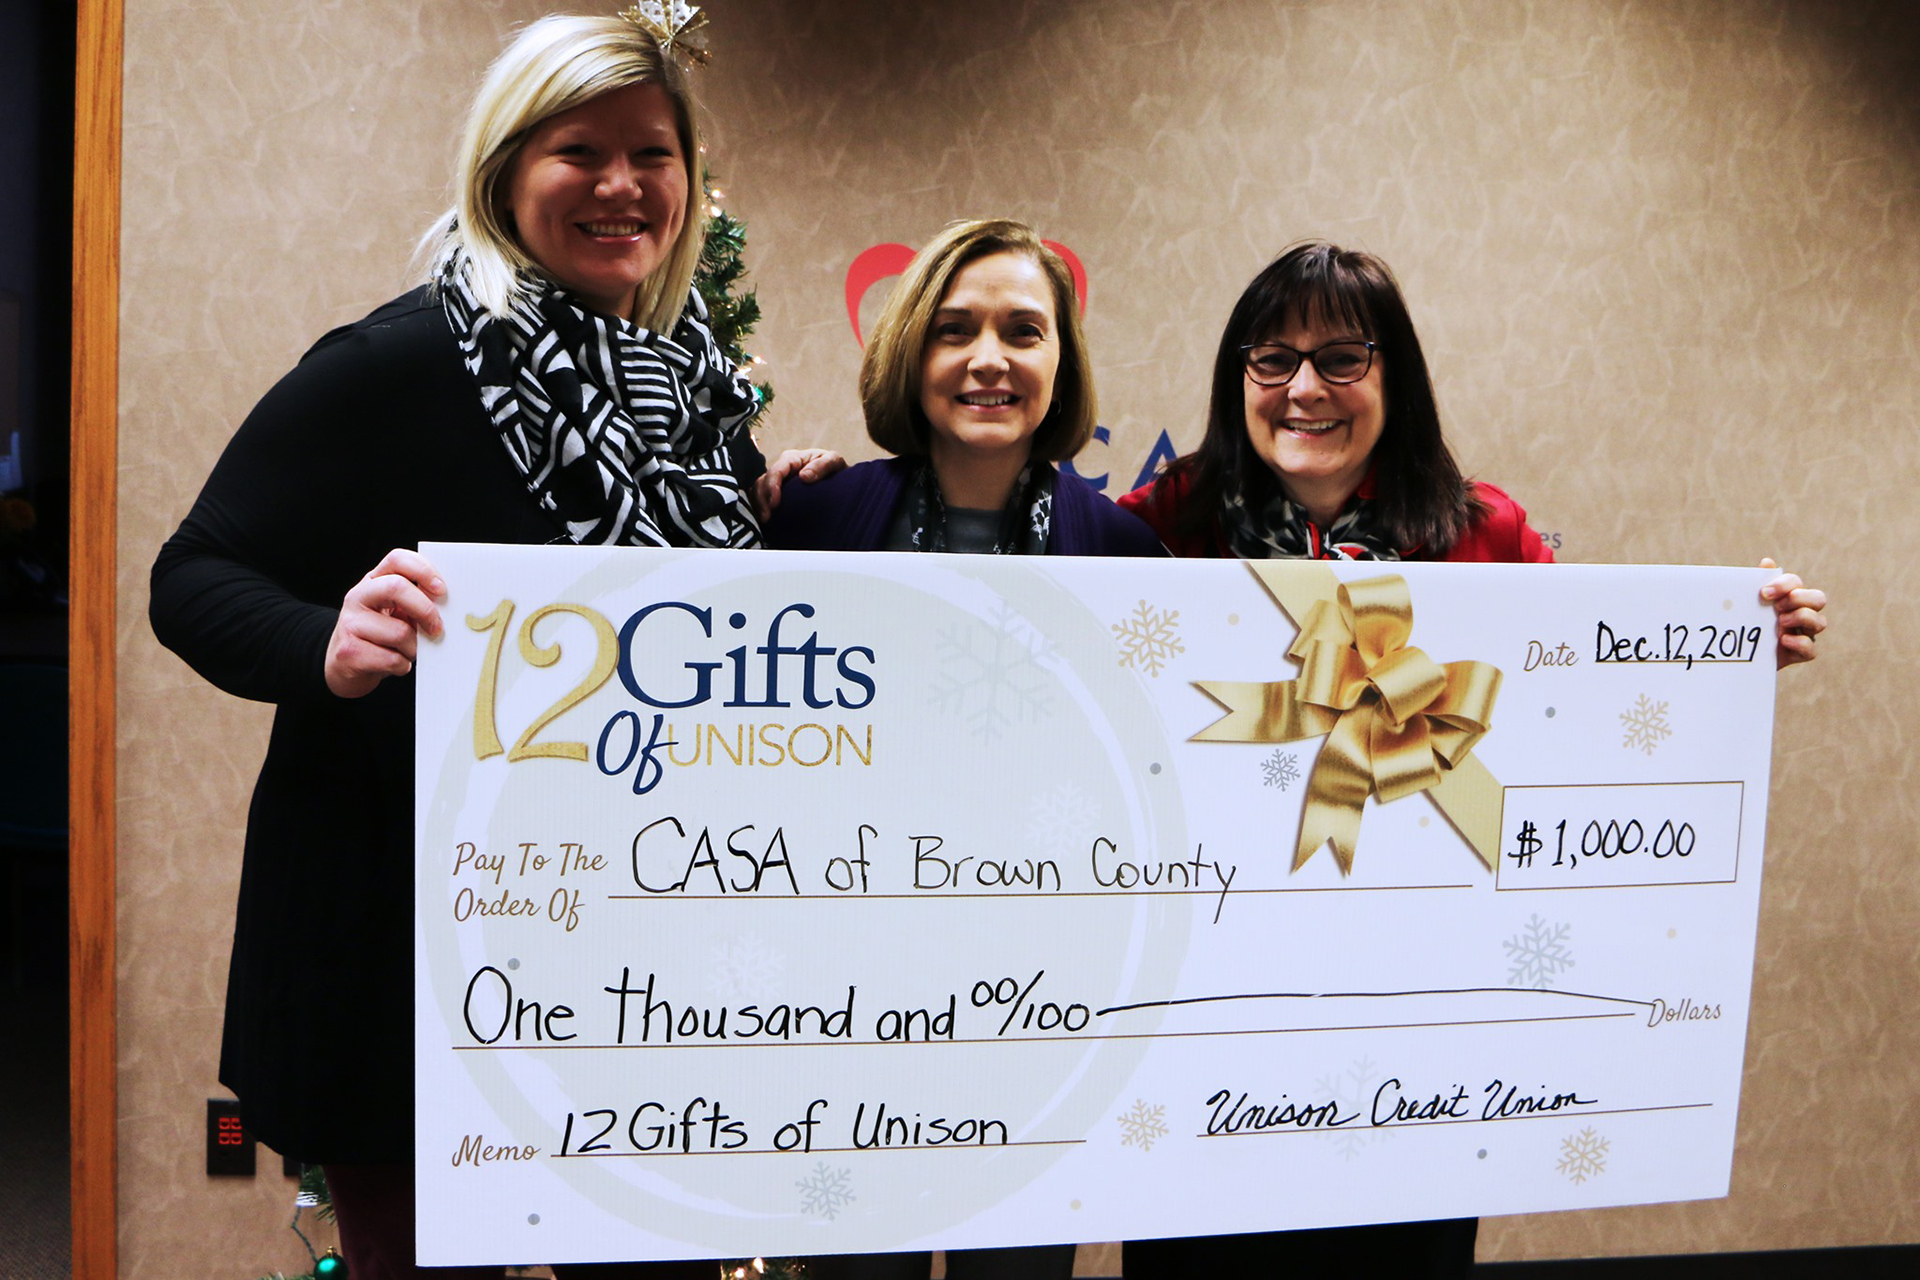 casa getting donation from unison